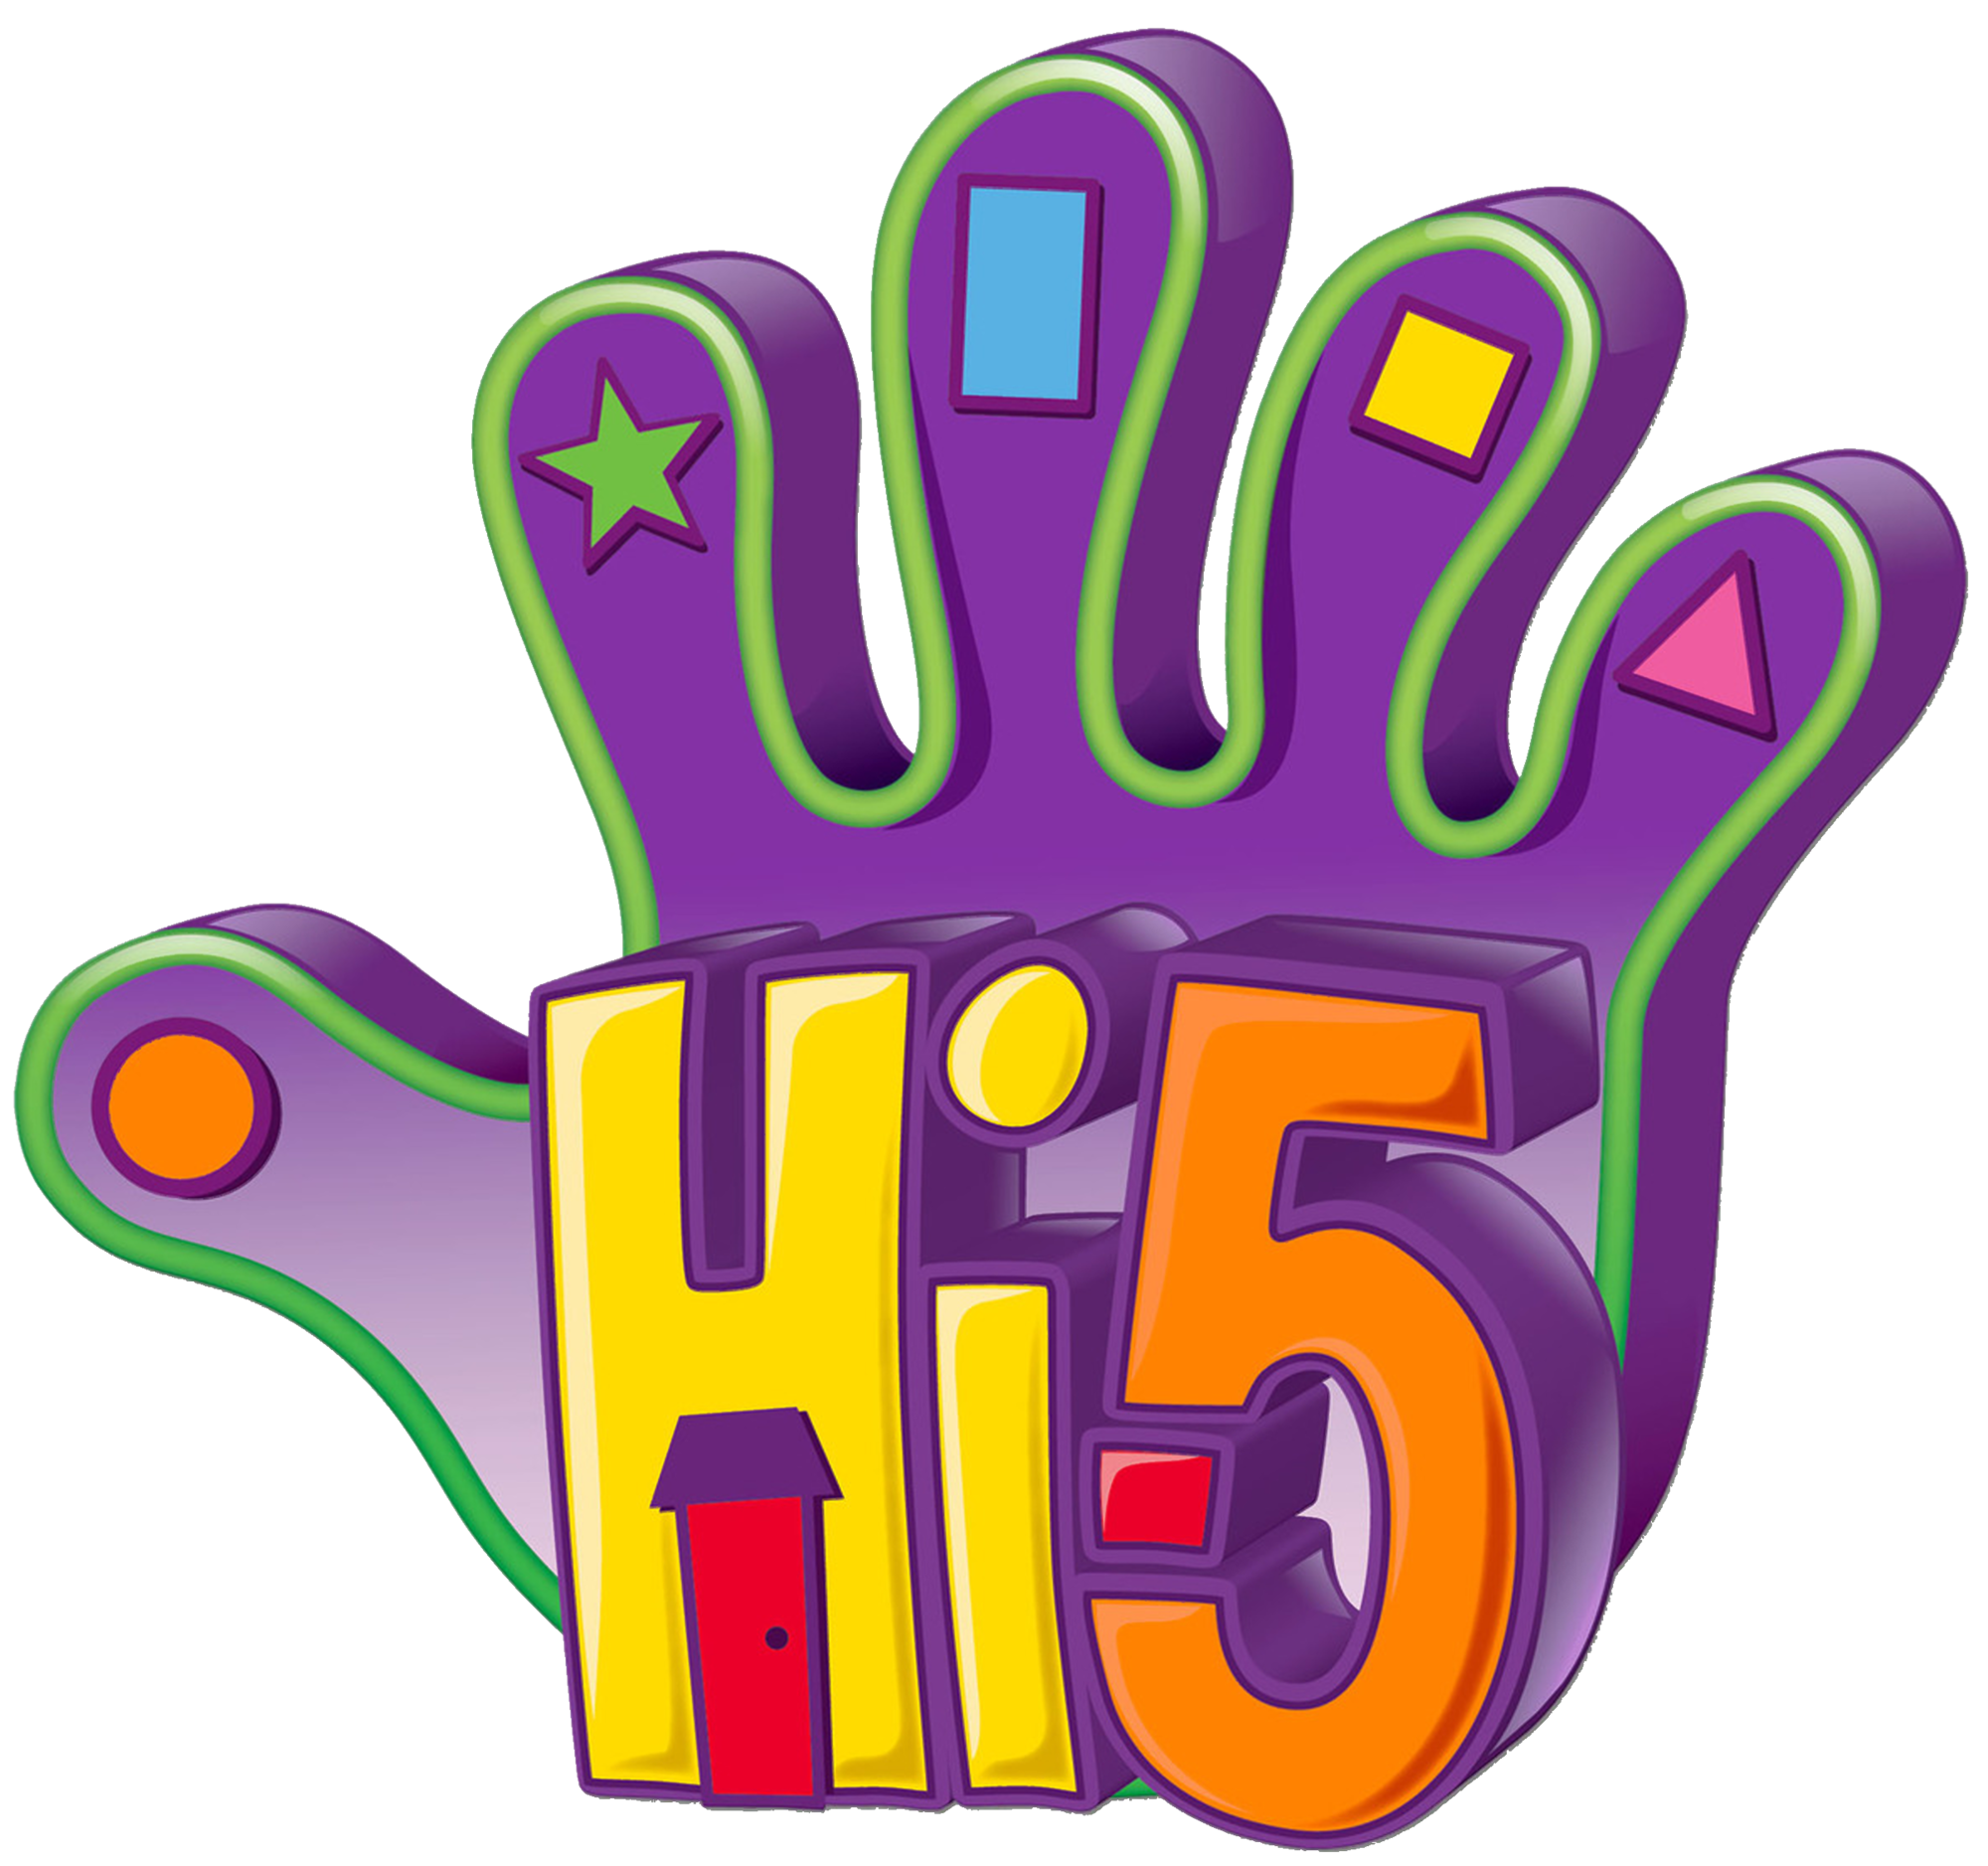 Hi-5_house_logo_giant.png